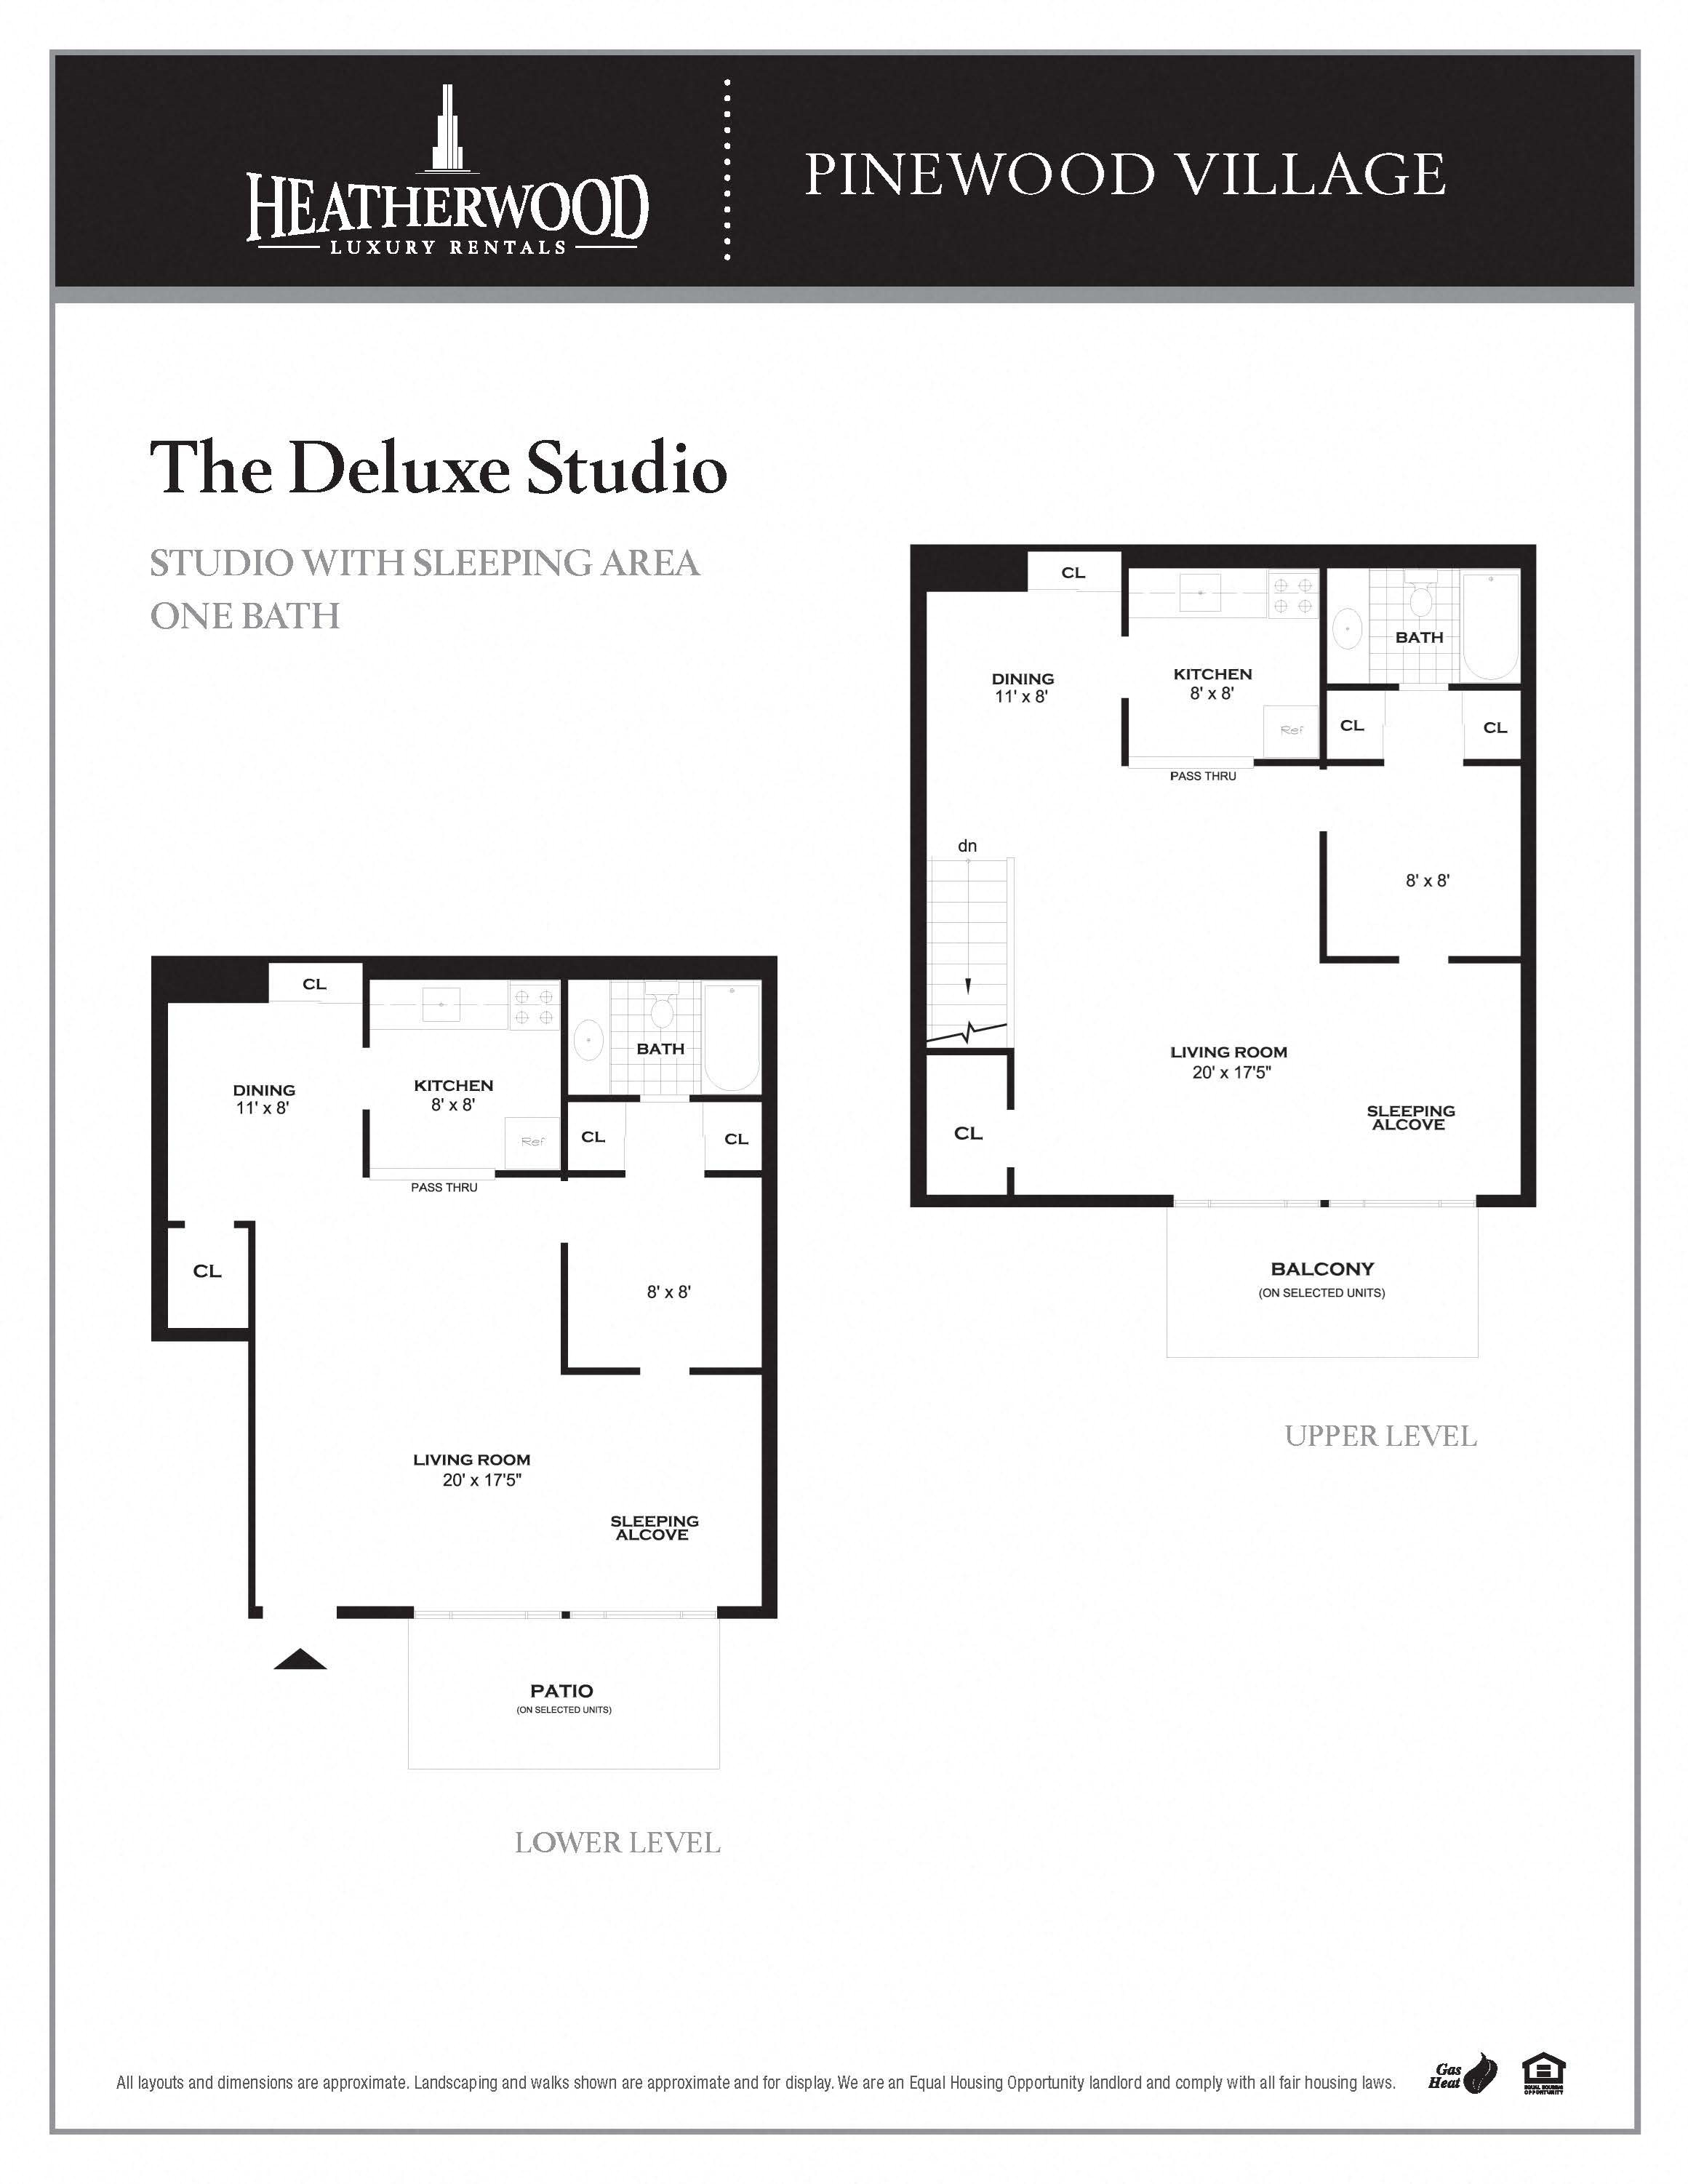 The Deluxe Studio Floorplan at Pinewood Village